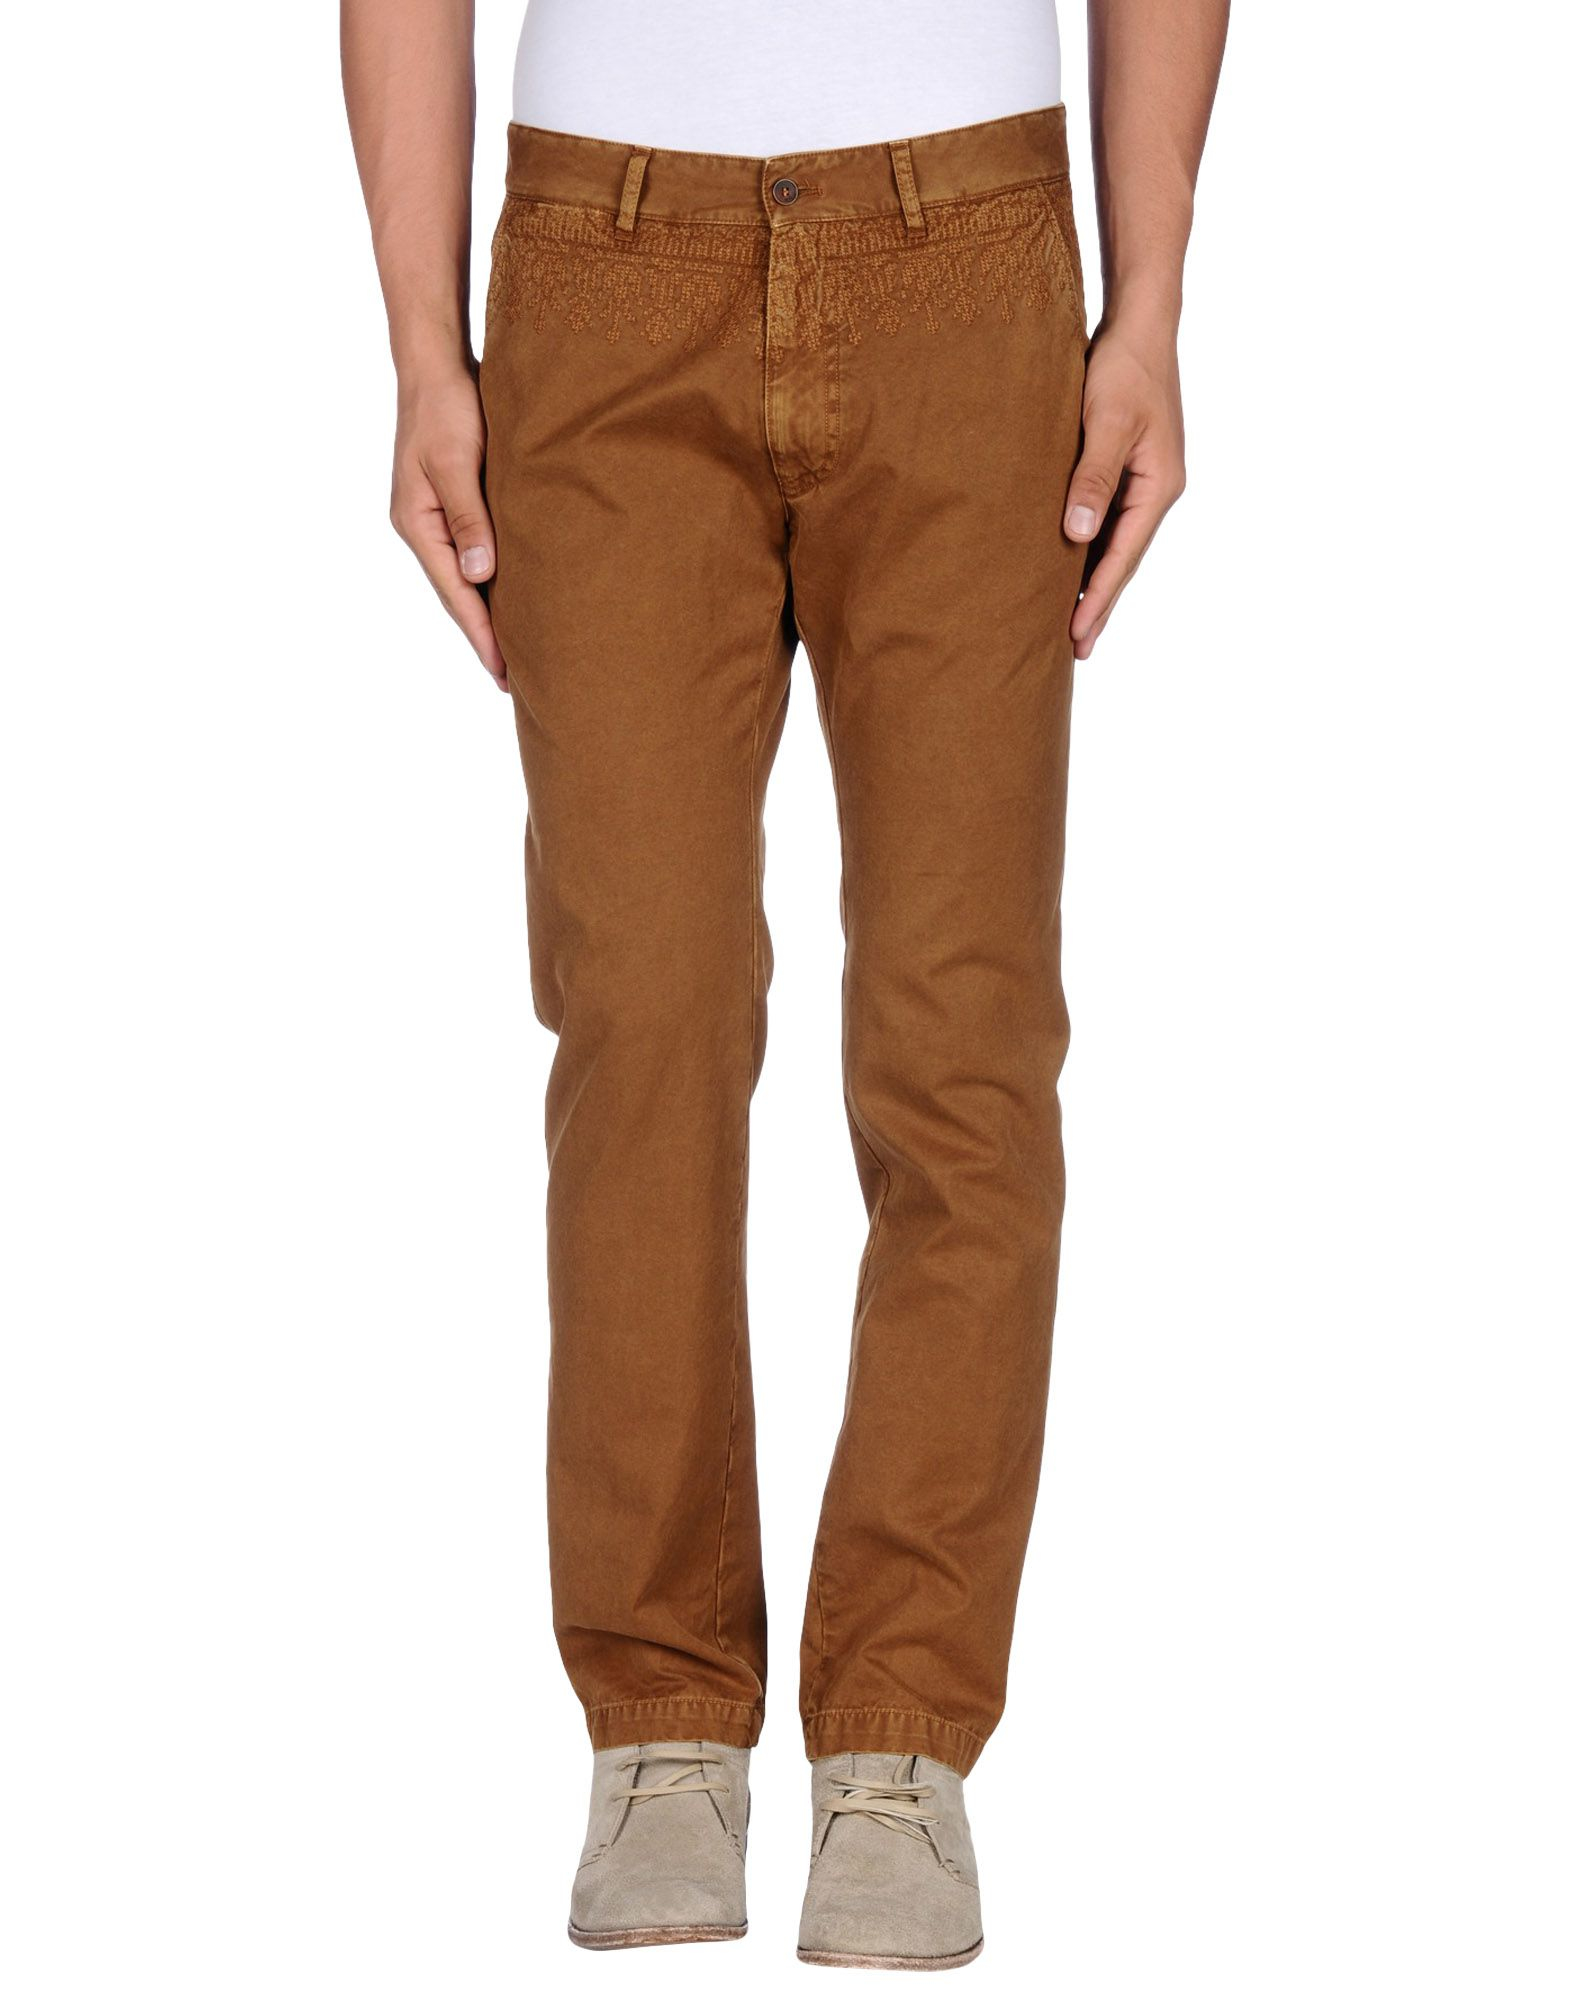 Choose from a wide selection of men's casual pants at Cabela's. Shop today for the best deals on men's cargo pants, men's chinos, khakis and even men's sweatpants, all competitively priced at Cabela's.